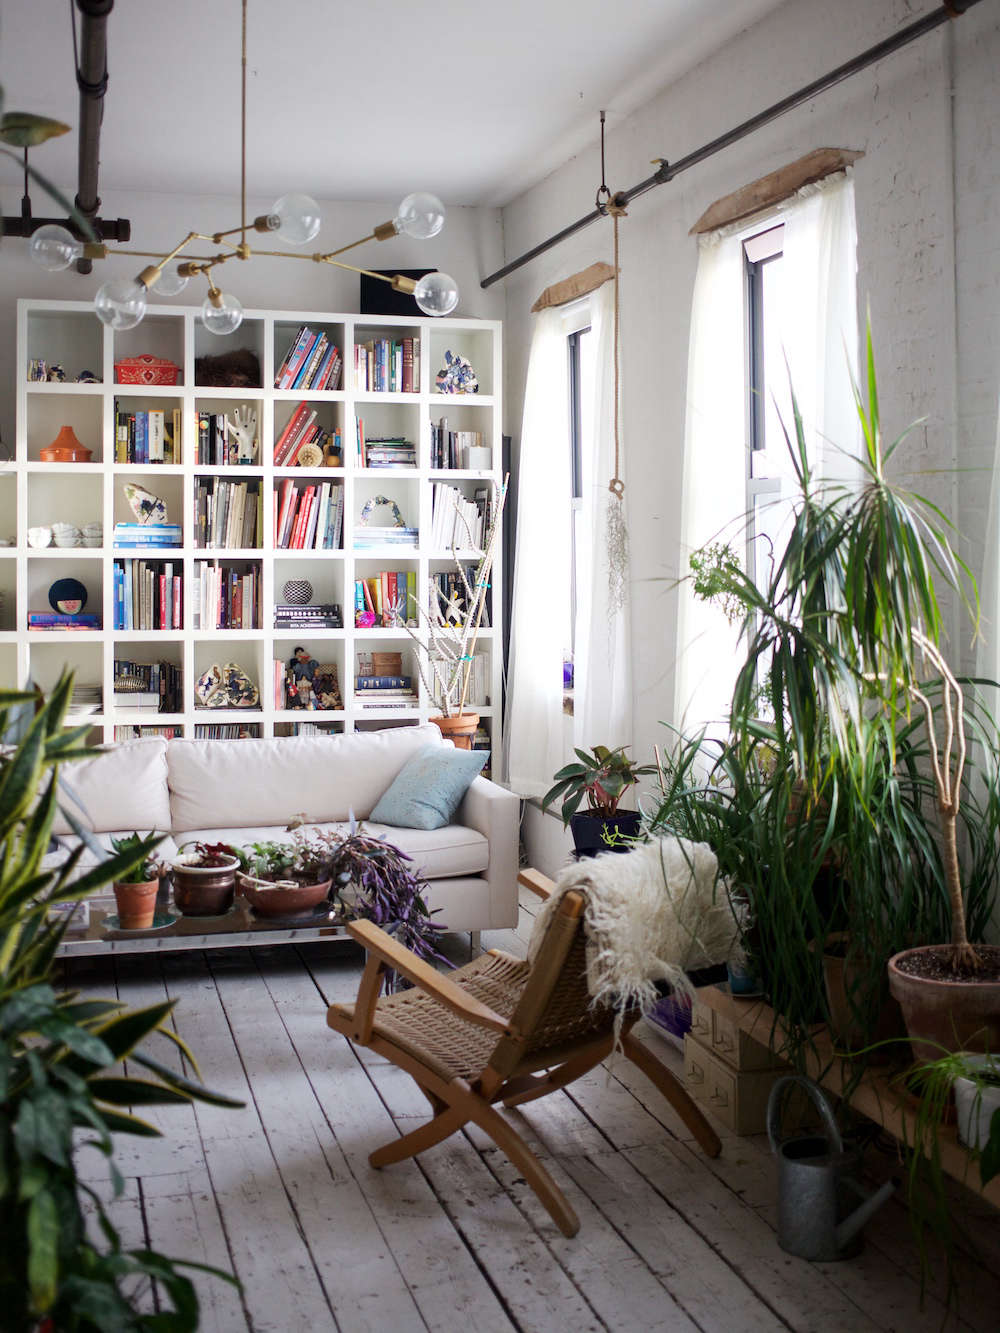 The living room of Shabd Simon-Alexander's former loft apartment in Williamsburg, where she lived for eight years, had about 80 houseplants. (She's now in Bedford-Stuyvesant.)